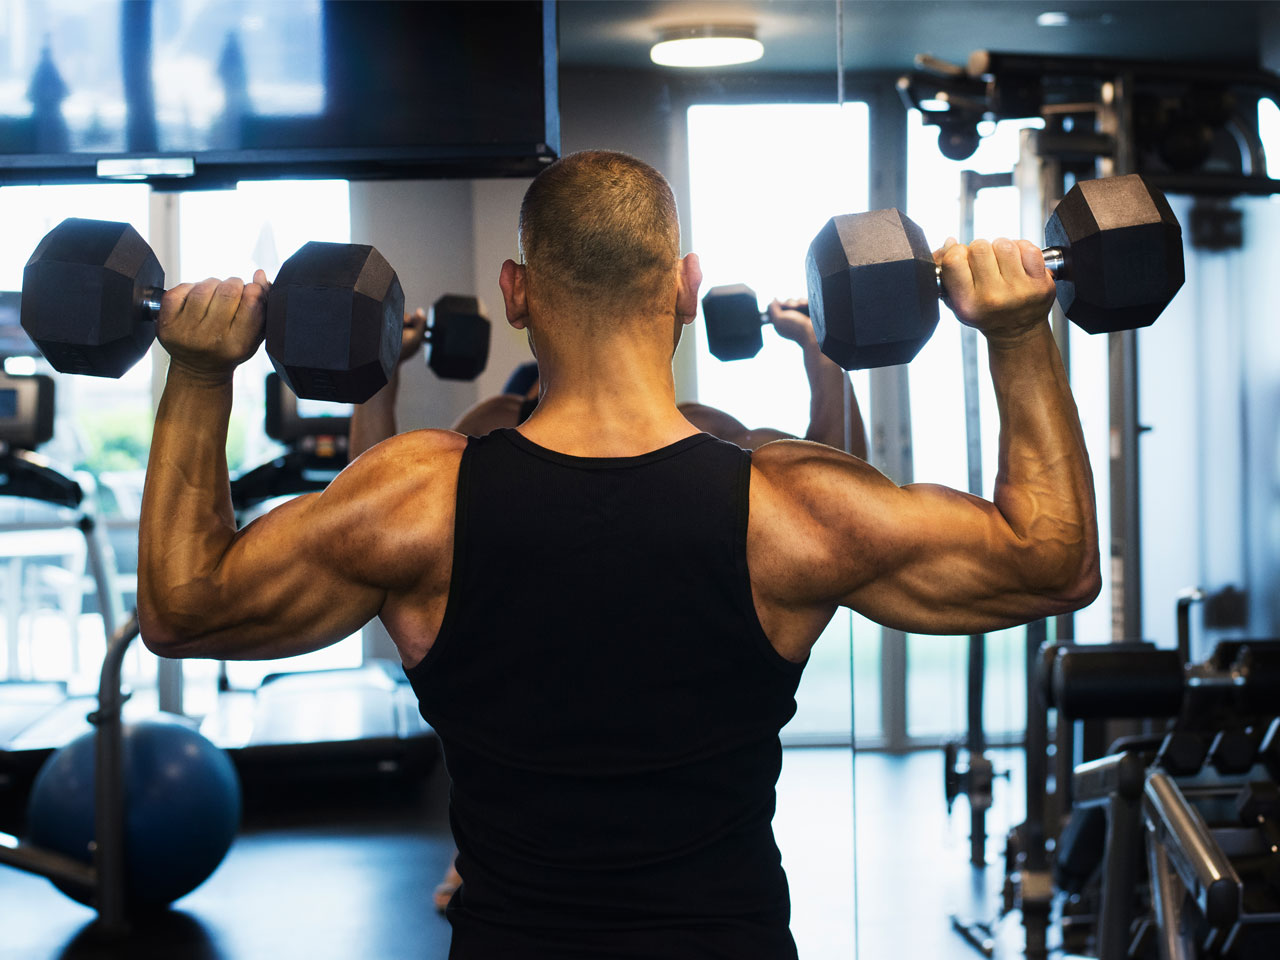 How to pump up the shoulders